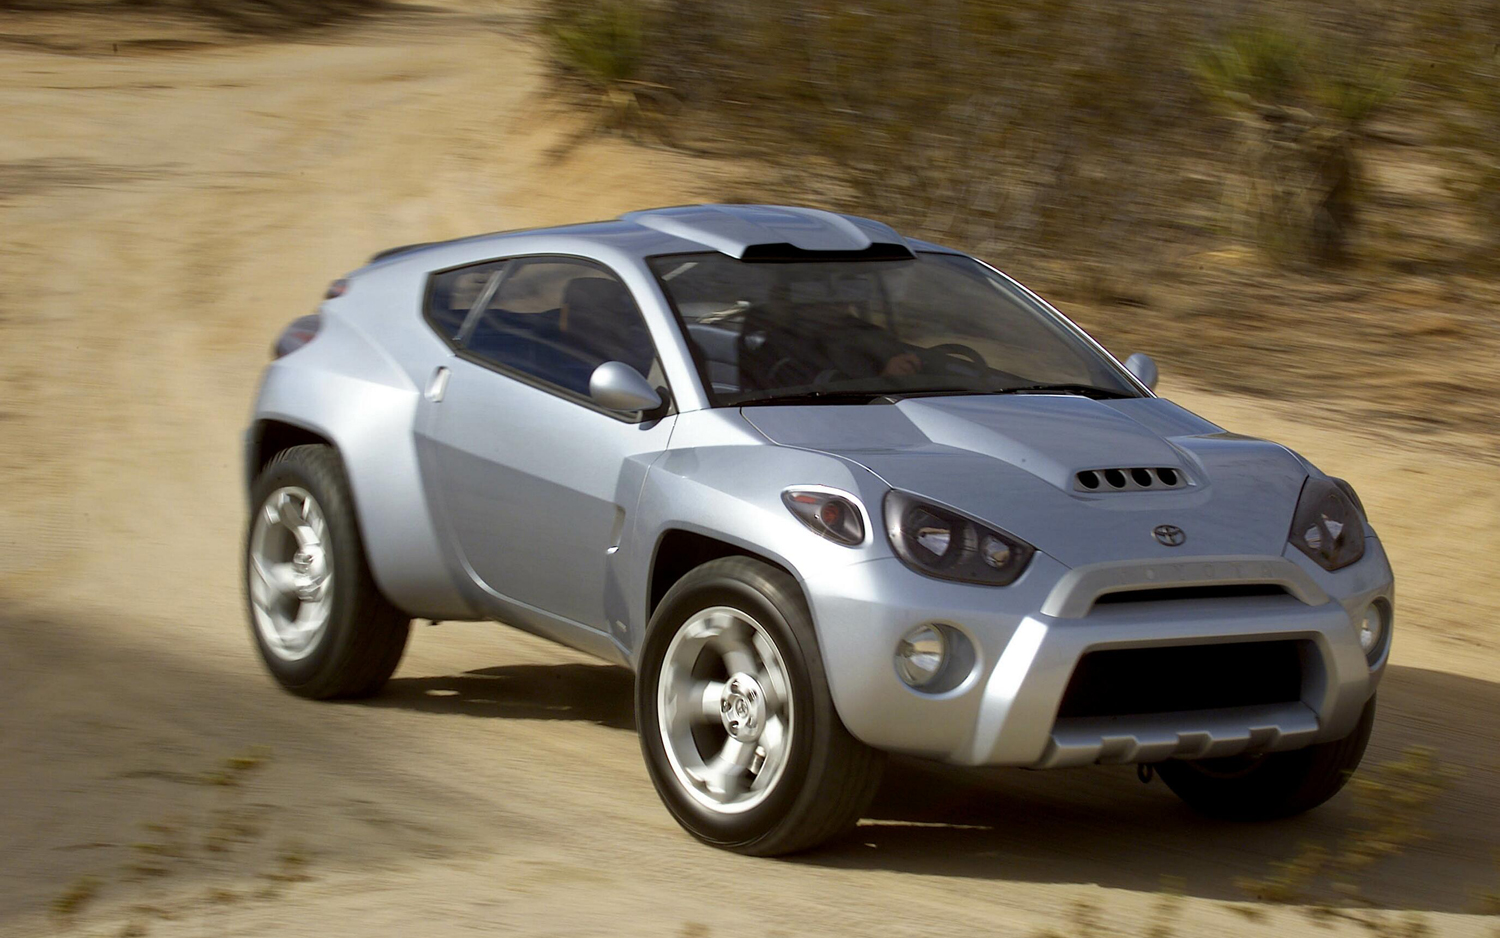 Toyota-RSC-Rugged-Sport-Coupe-front-three-quarter-view.jpg